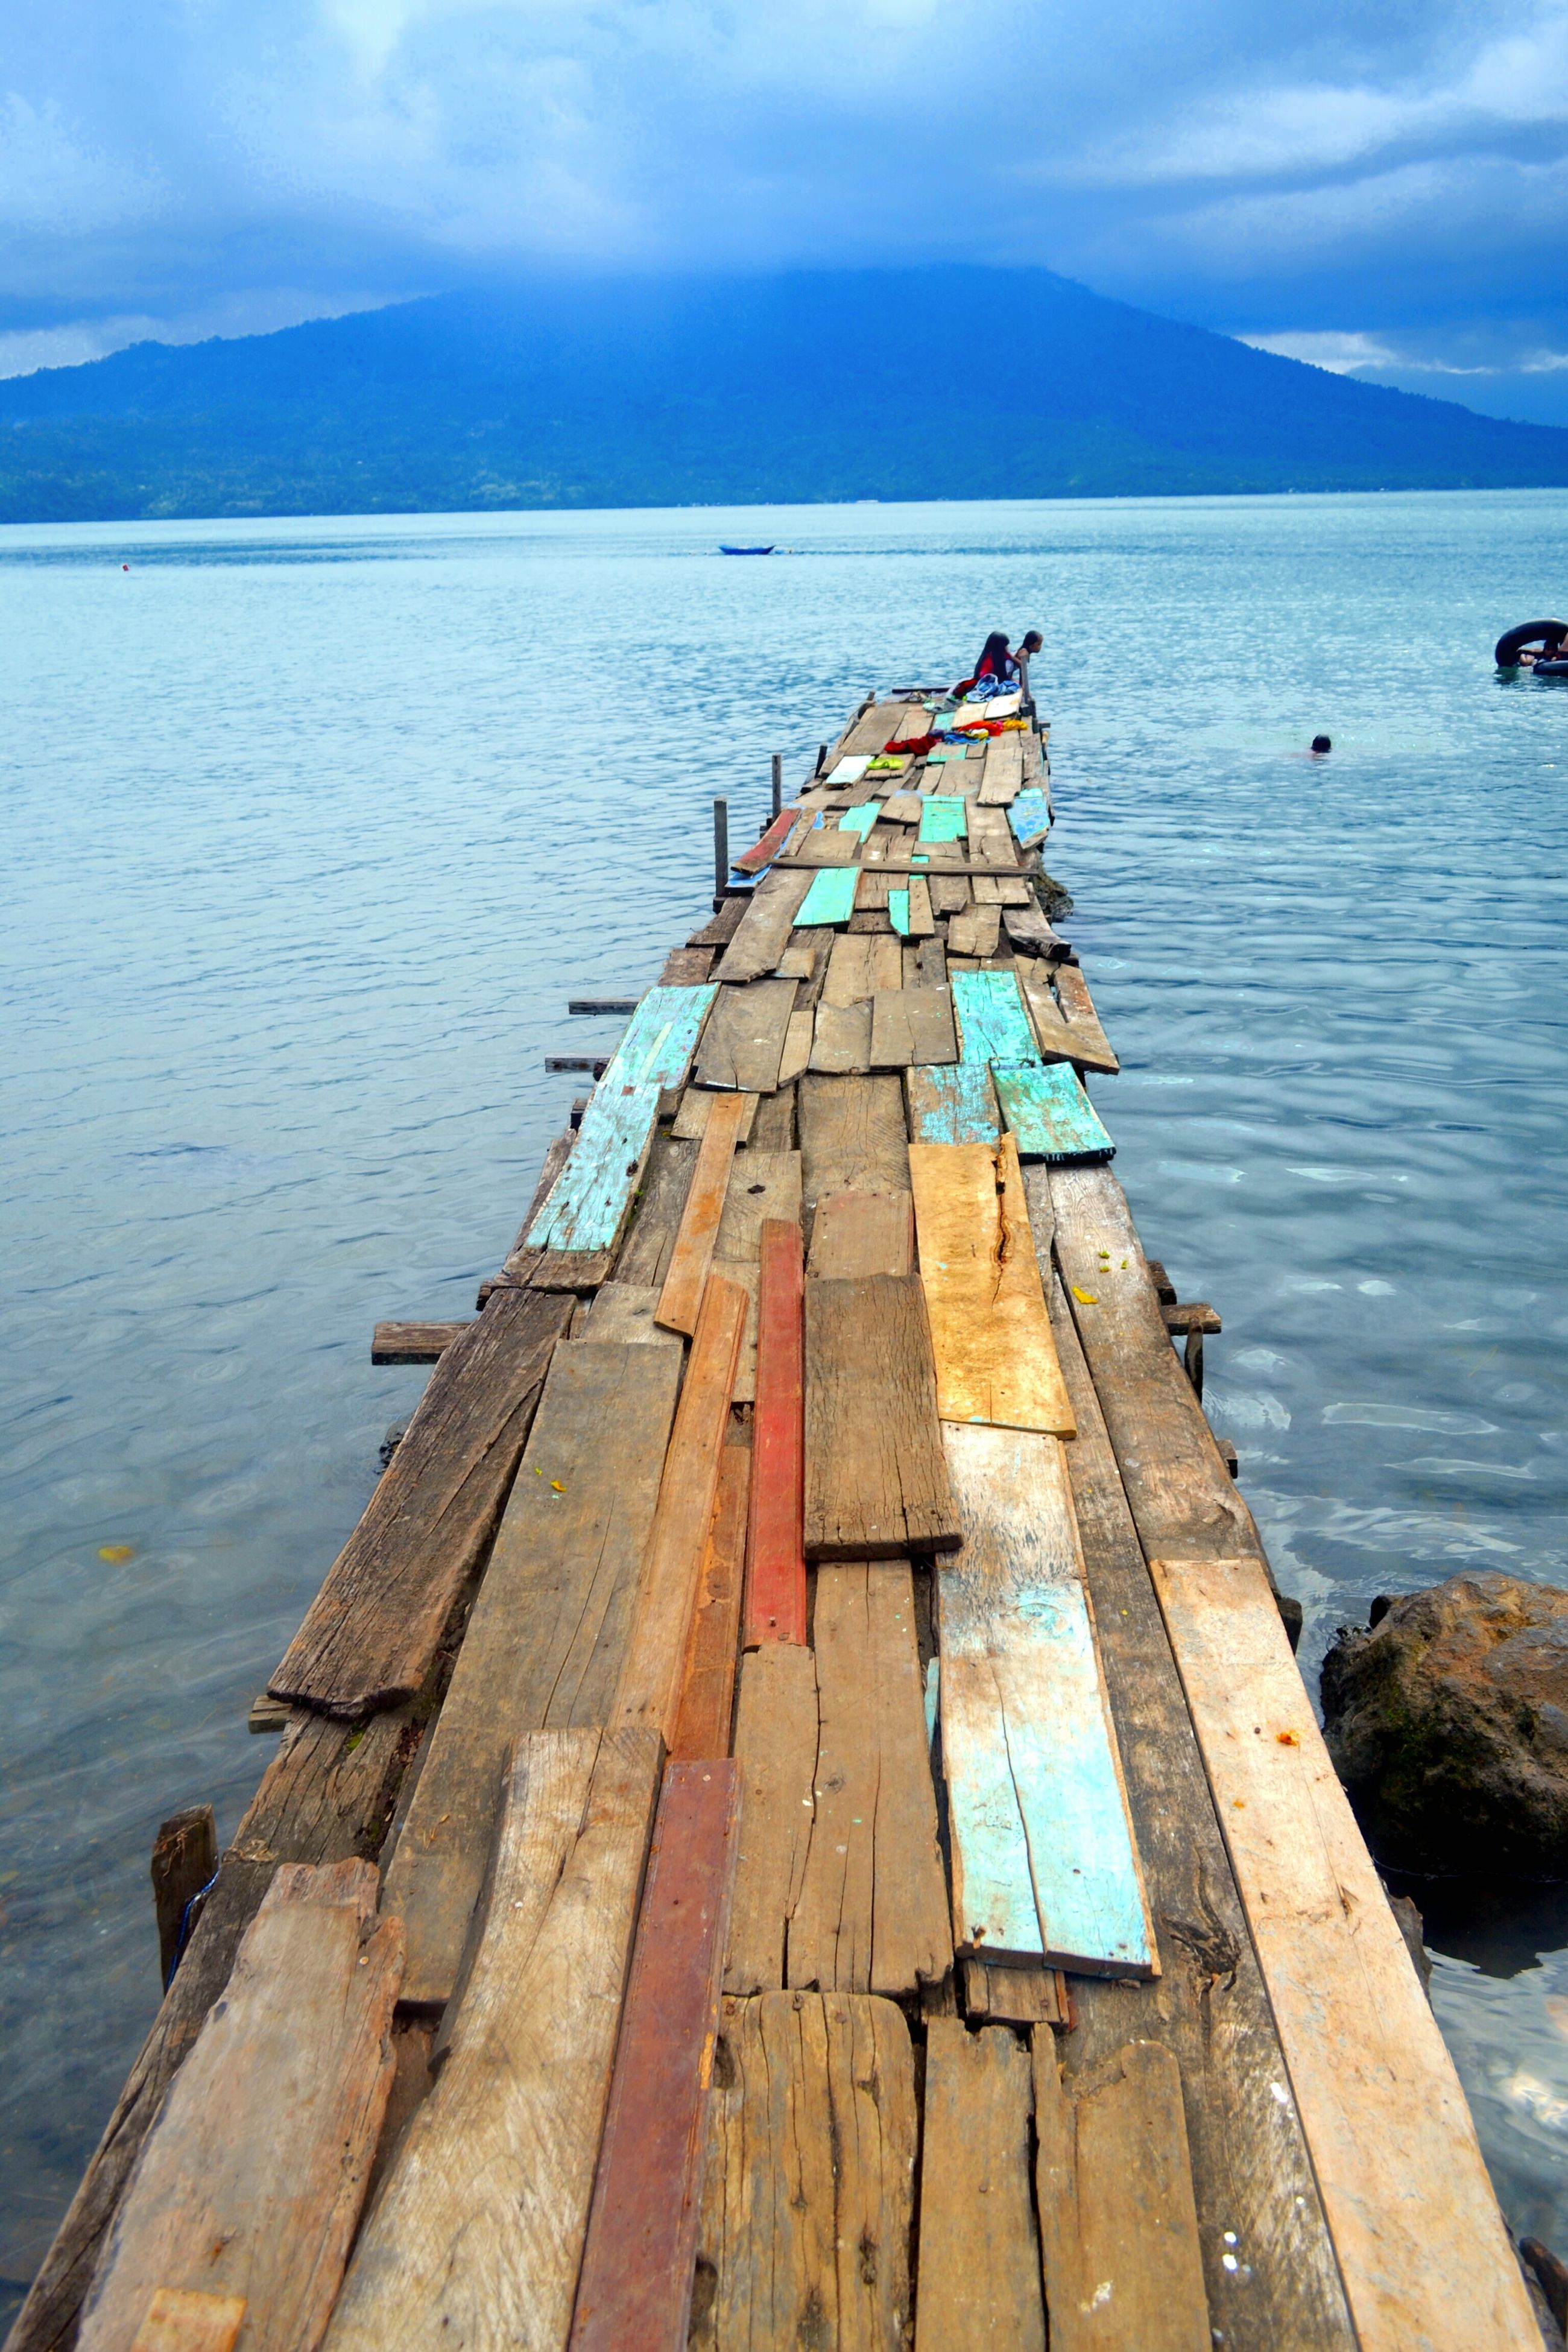 water, sea, pier, wood - material, sky, tranquility, jetty, tranquil scene, nature, scenics, nautical vessel, beauty in nature, lake, wood, transportation, animal themes, rippled, day, boat, railing